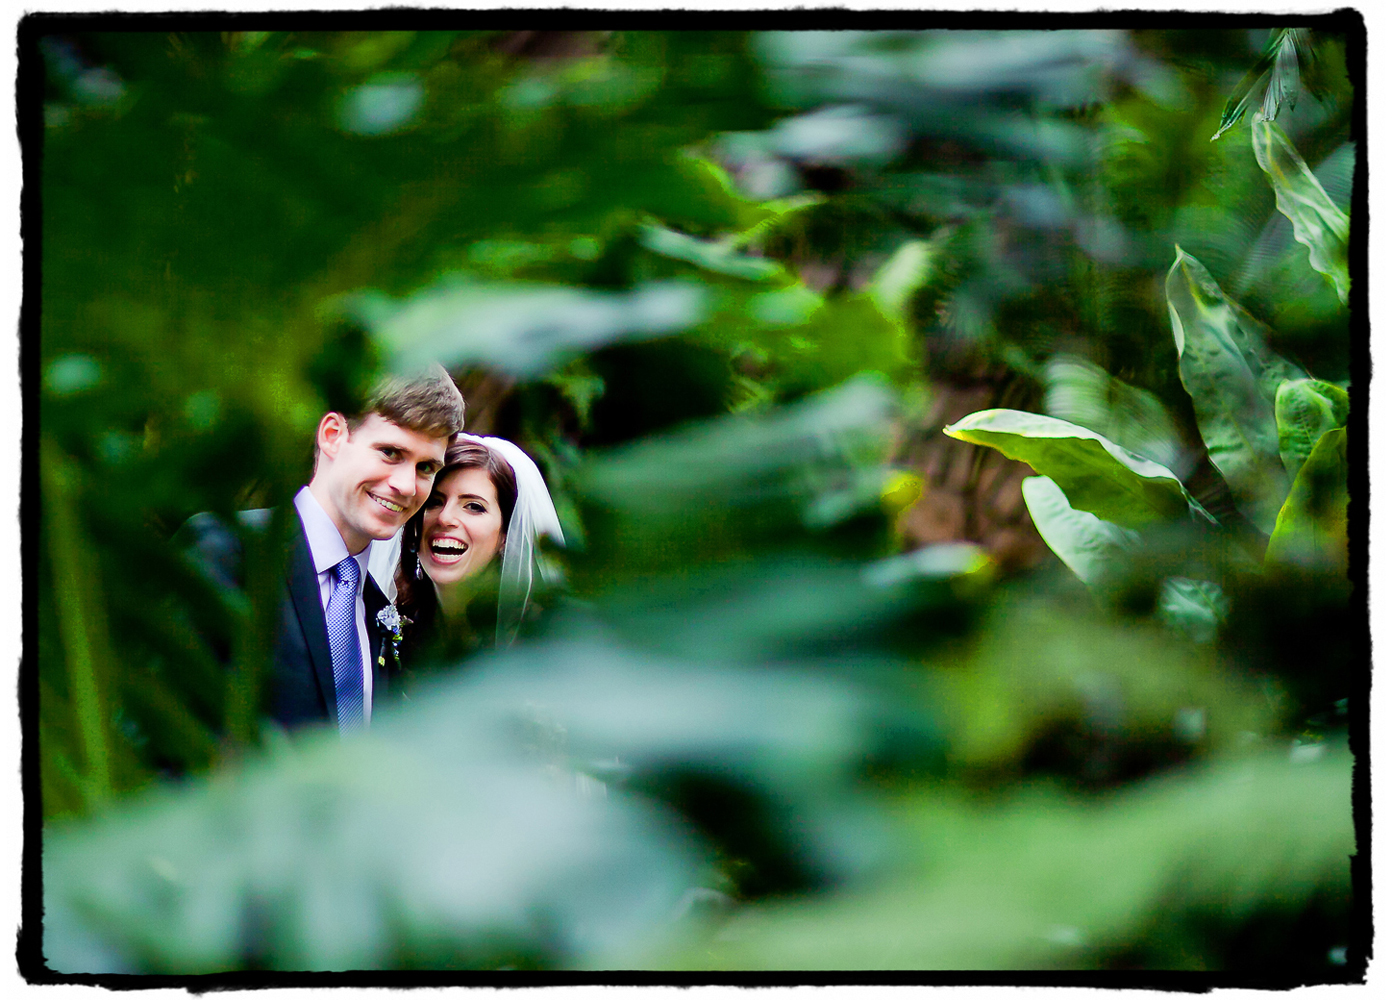 I shot this portrait through the foliage at Brooklyn Botanic Garden. I love the bokeh framing them in foreground and background.